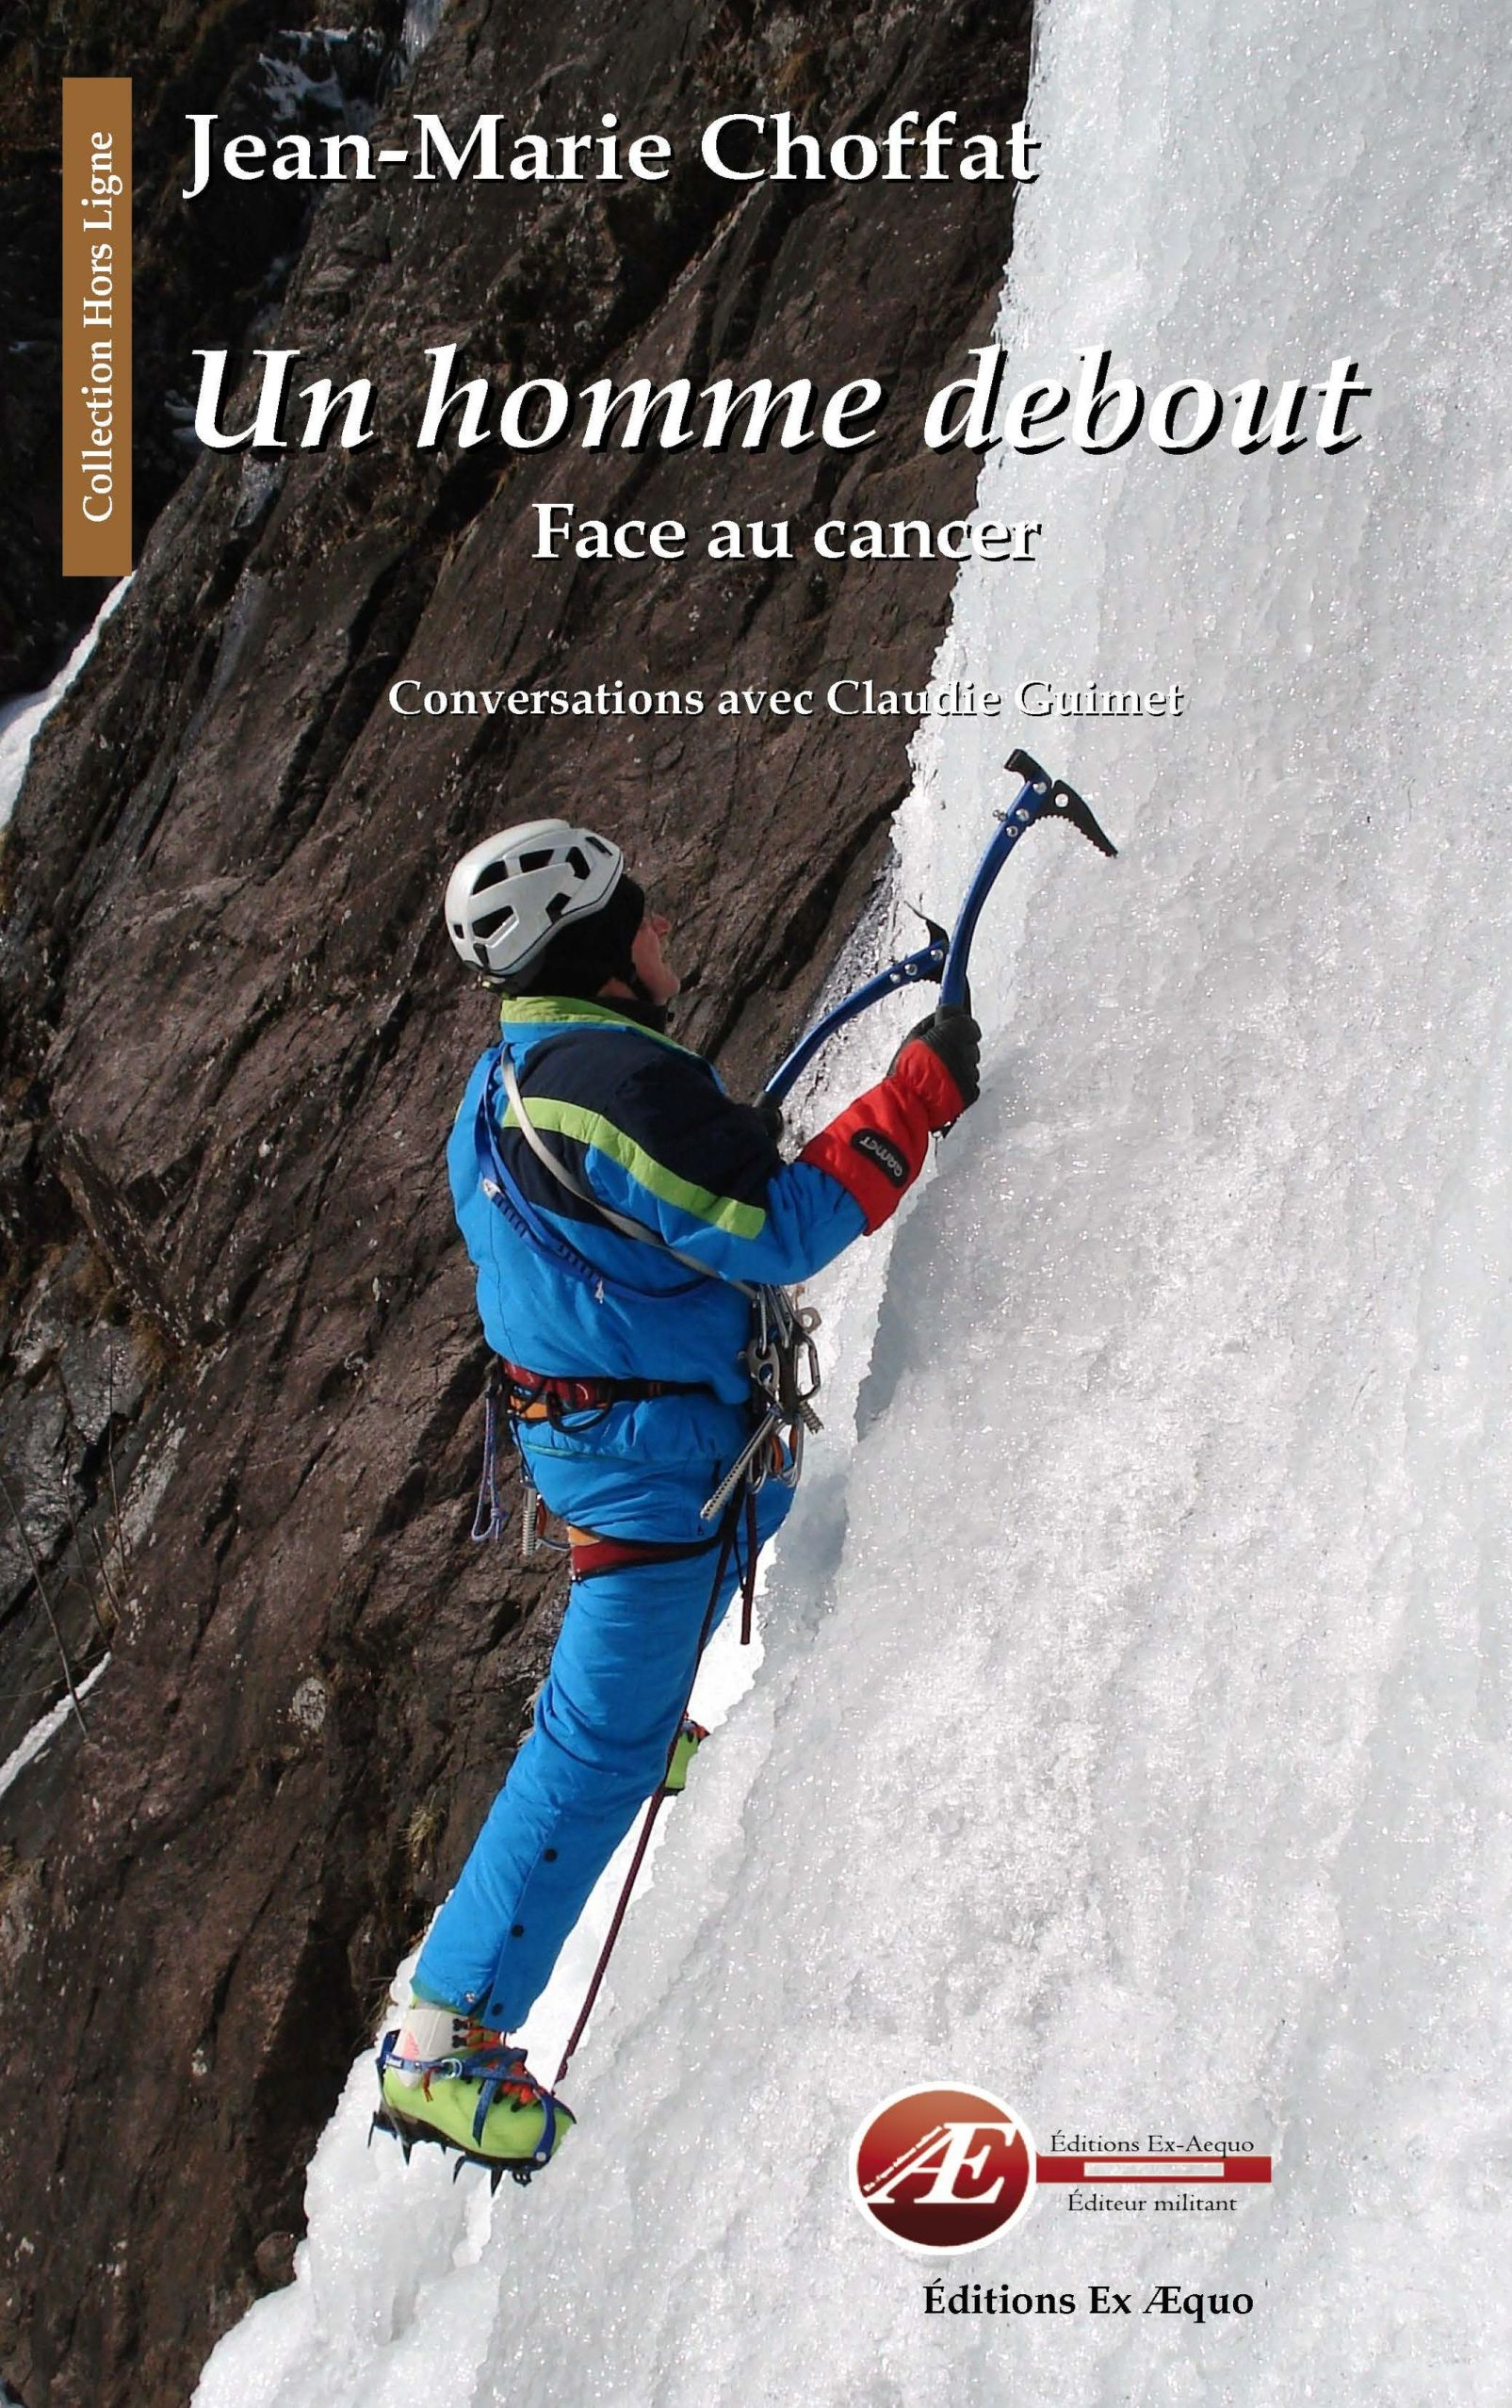 Un homme debout, face au cancer